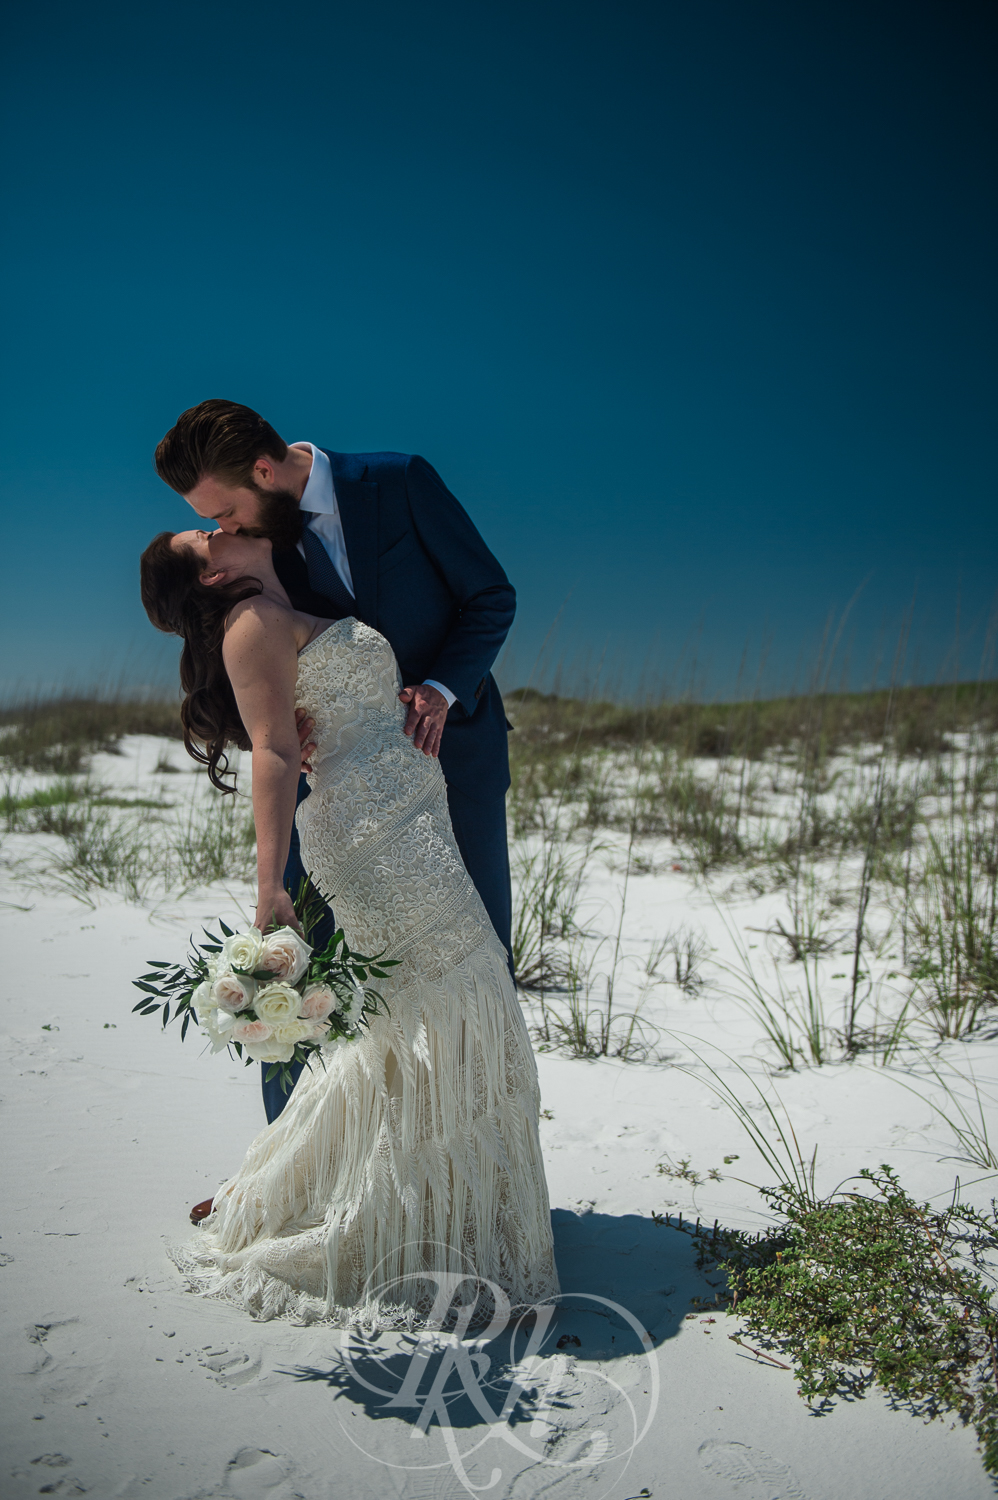 Callan & John - Florida Wedding Photography - Monet Monet - RKH Images -22.jpg